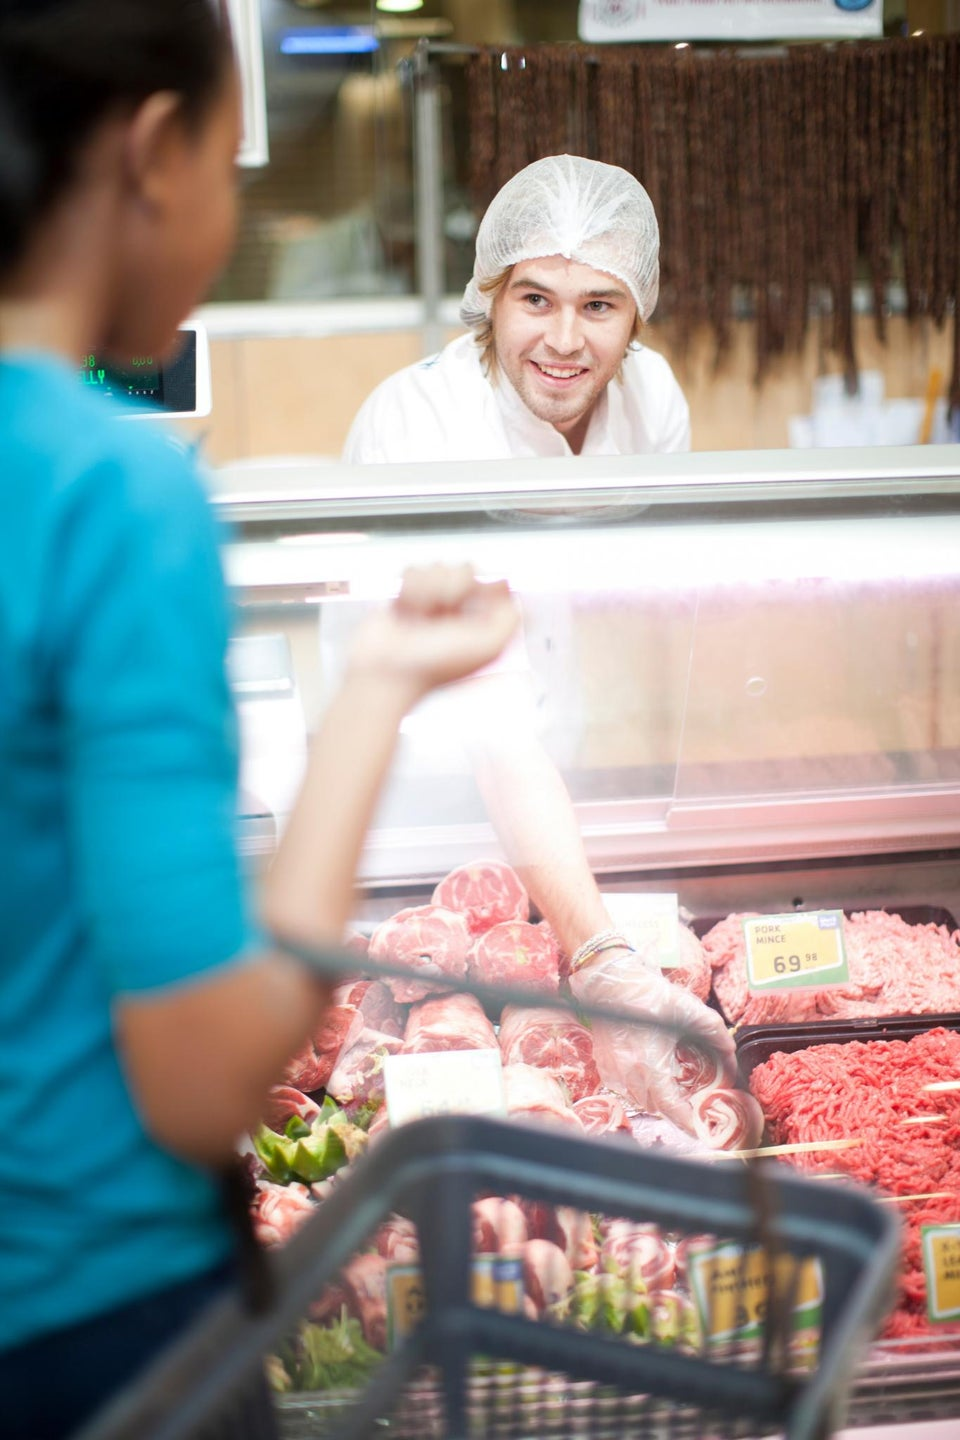 ESSENCE Poll: How Concerned Are You About Processed Meat Being Linked to Cancer?